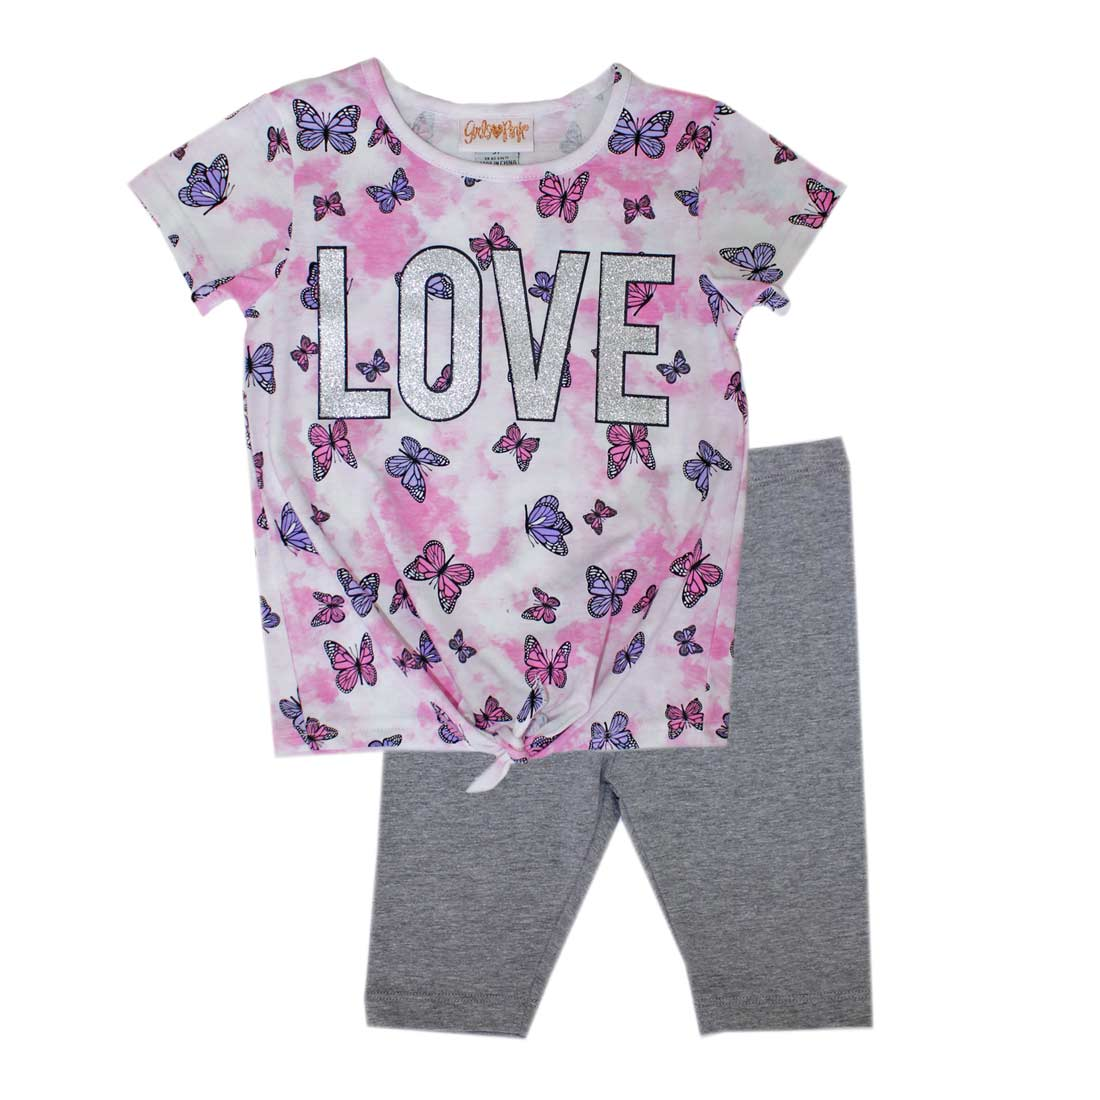 GIRLS PINK Tye Dye Love Screen Top Biker Legging-2219002